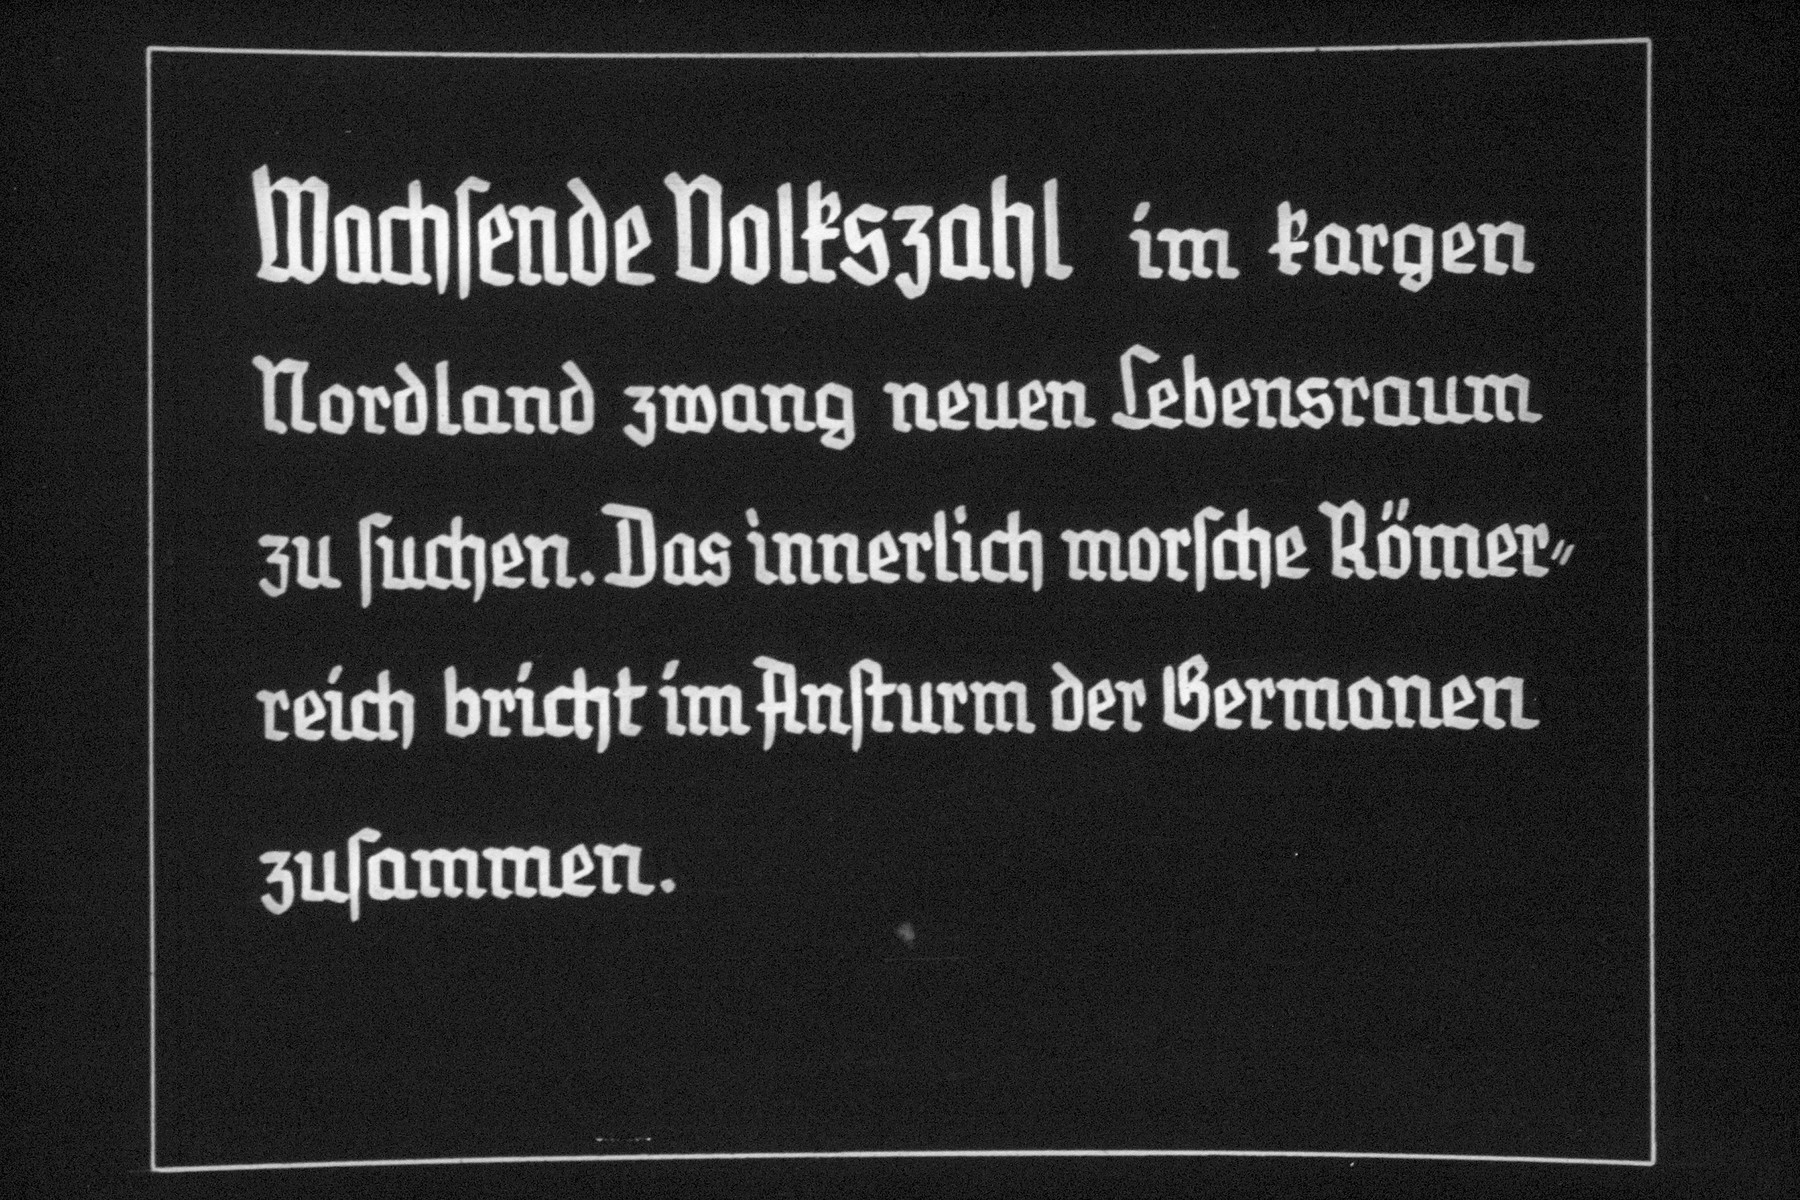 "25th Nazi propaganda slide for a Hitler Youth educational presentation entitled ""5000 years of German Culture.""  Wachsende Volkszahl im kargen Nordland zwang neuen Lebensraum zu suchen. Das innerlich morsche Römerreich bricht im Ansturm der Germanen zusammen. // [The] growing population in the baren North was forced to look for a new living space. The Roman Empire, rotting from within, collapsed during the German onslaught."